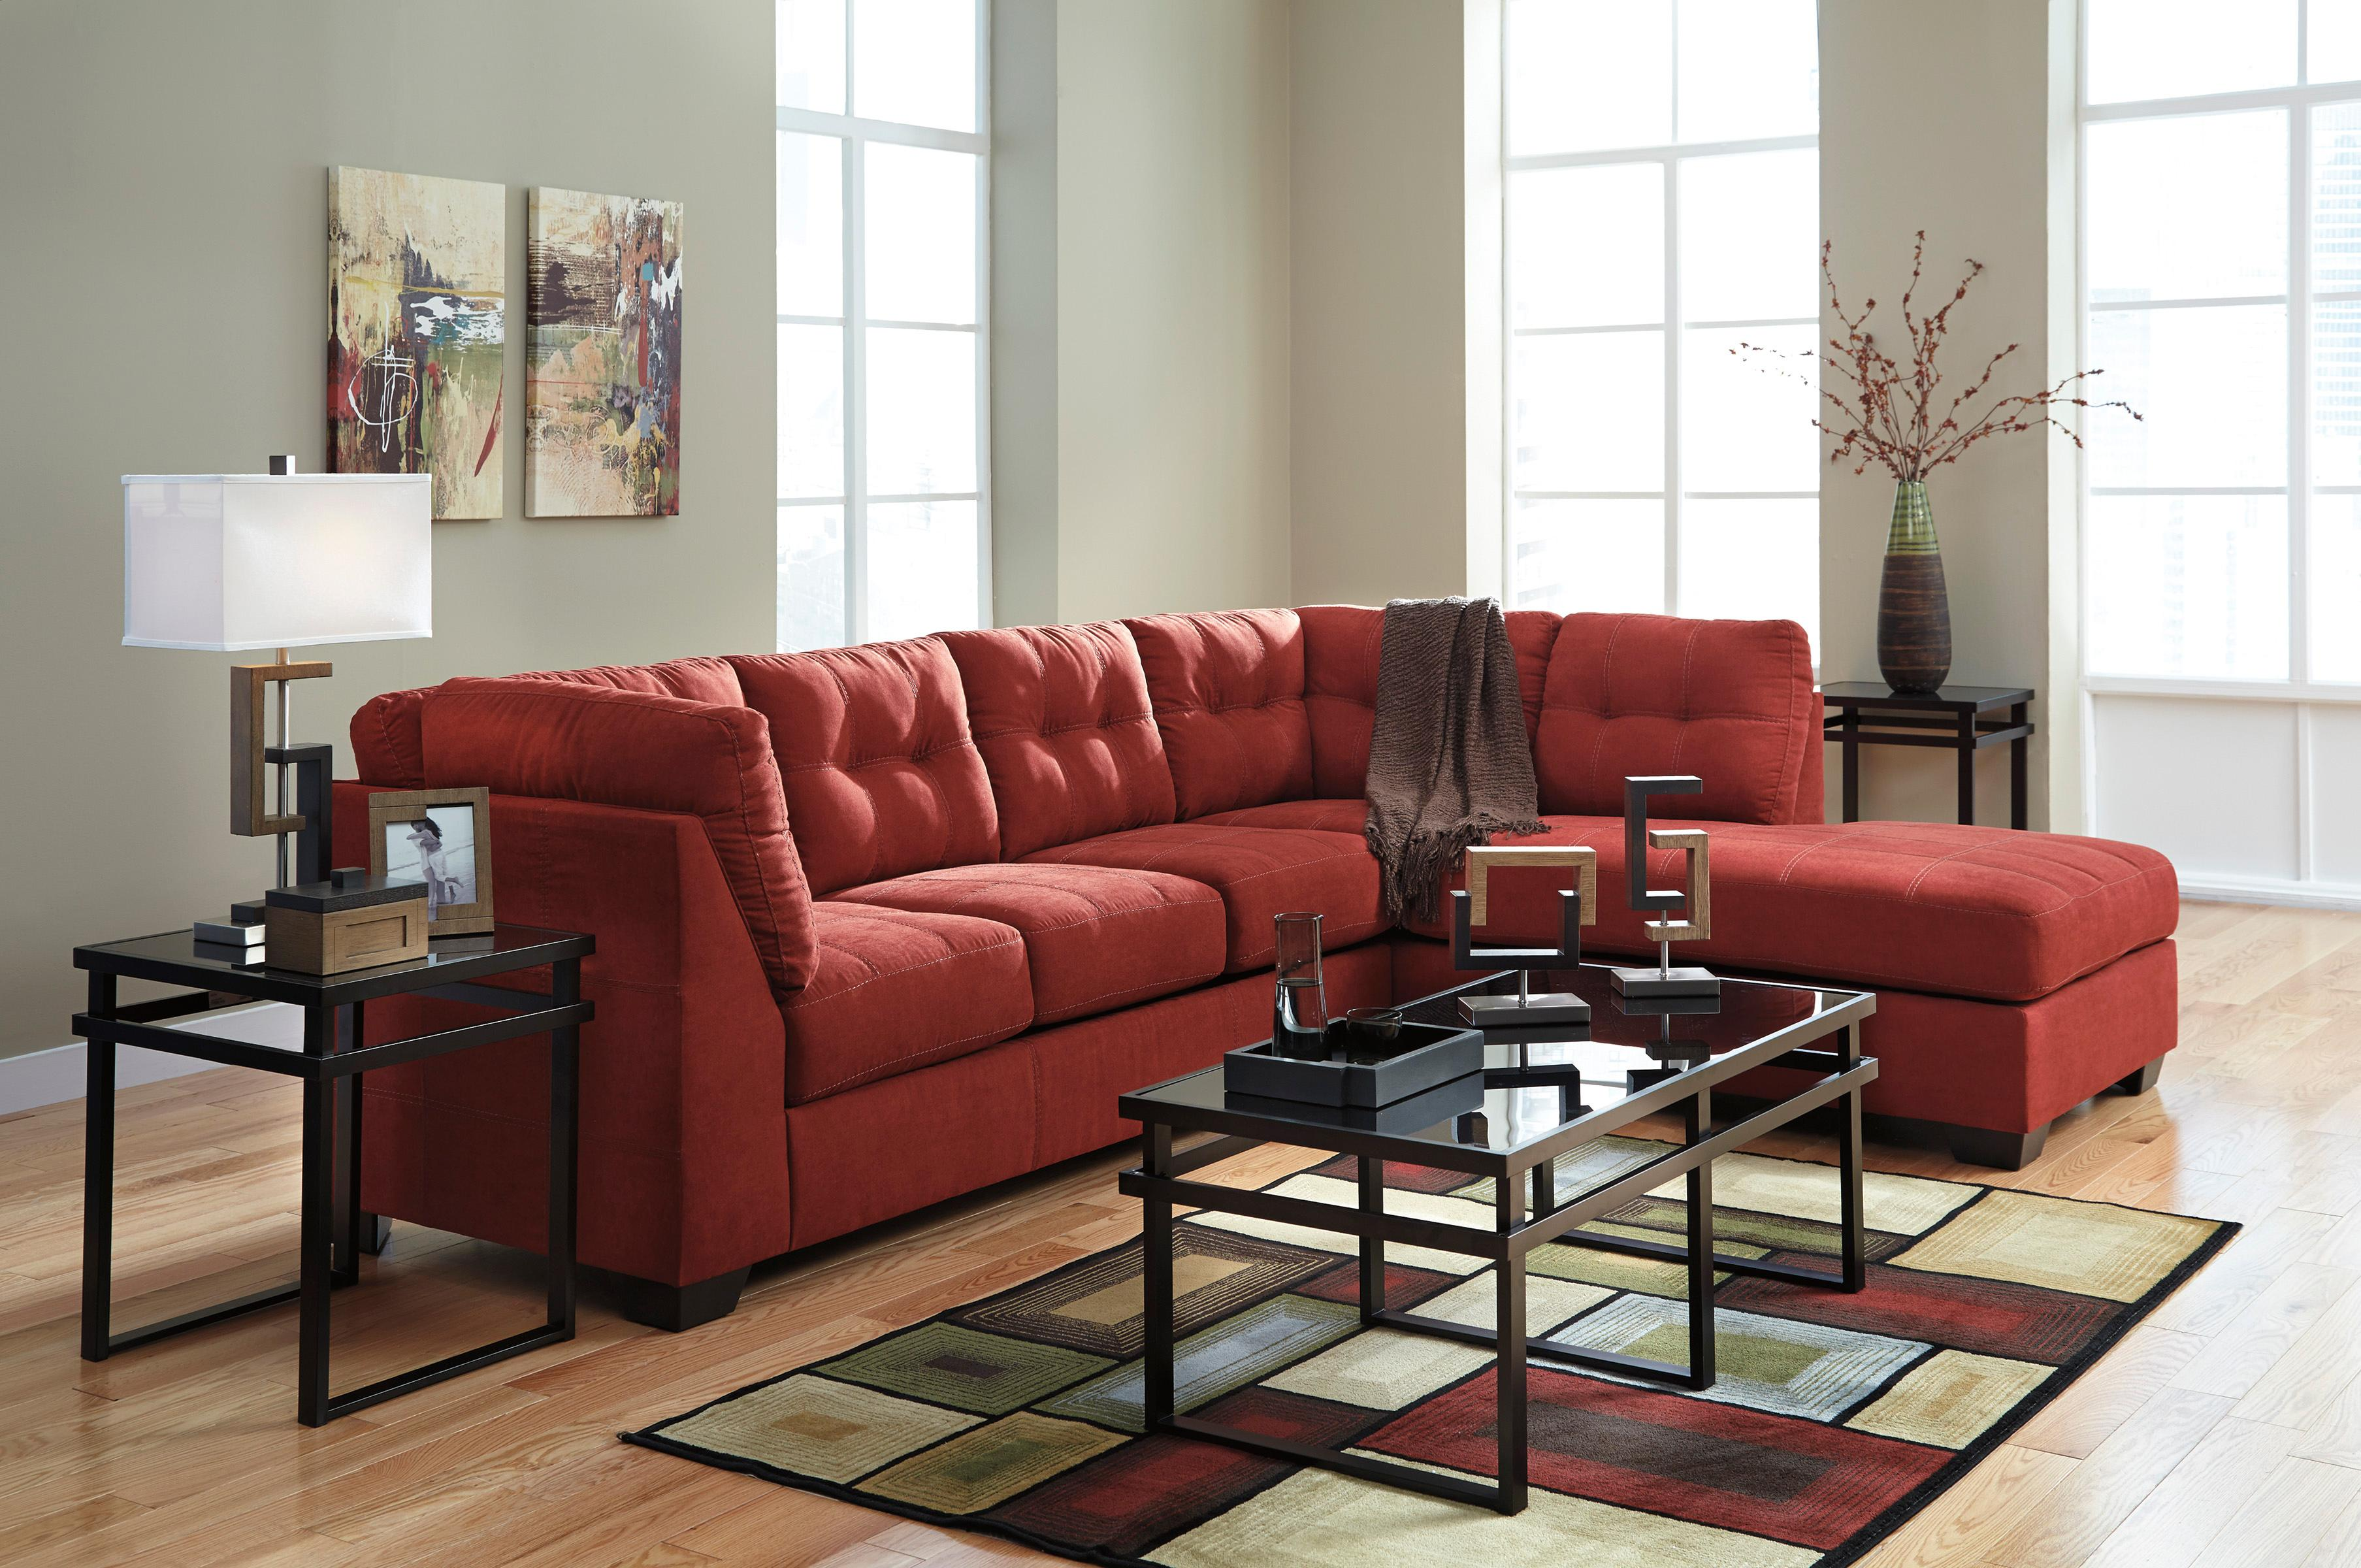 2 piece sectional w sleeper sofa right chaise by for 2 piece sectional with chaise